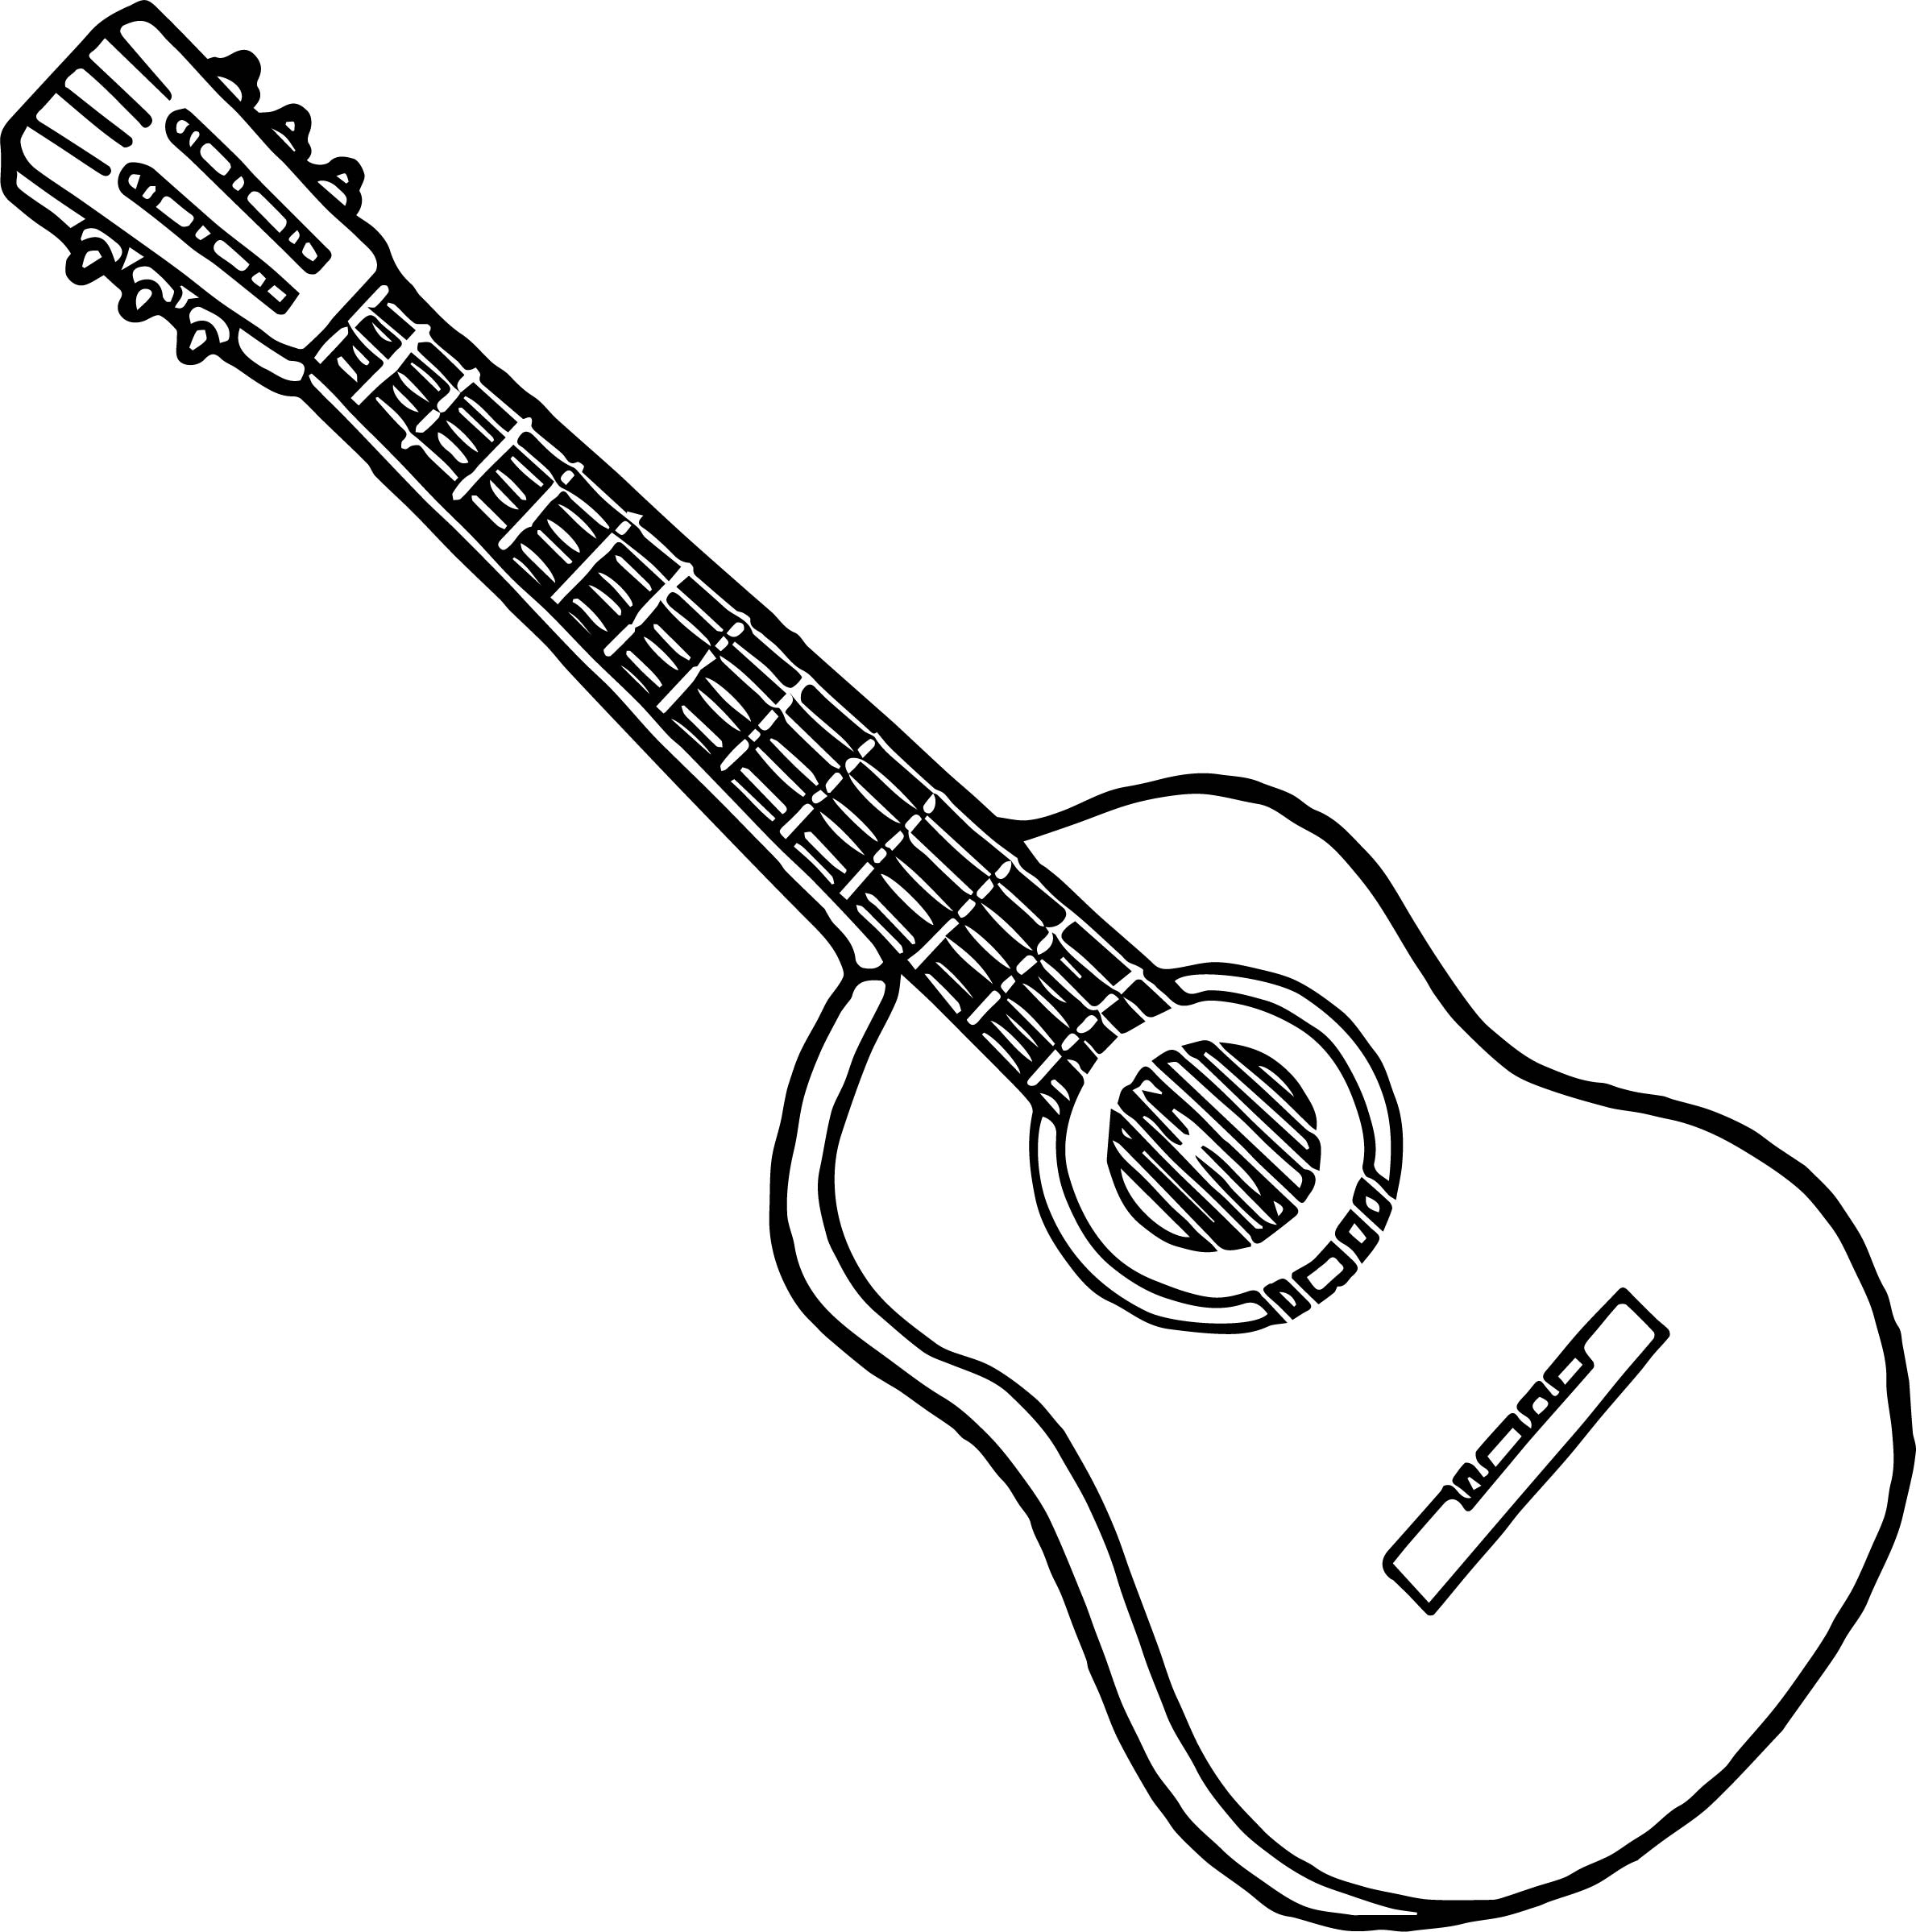 Printable Coloring Pages Guitar Coloring Pages